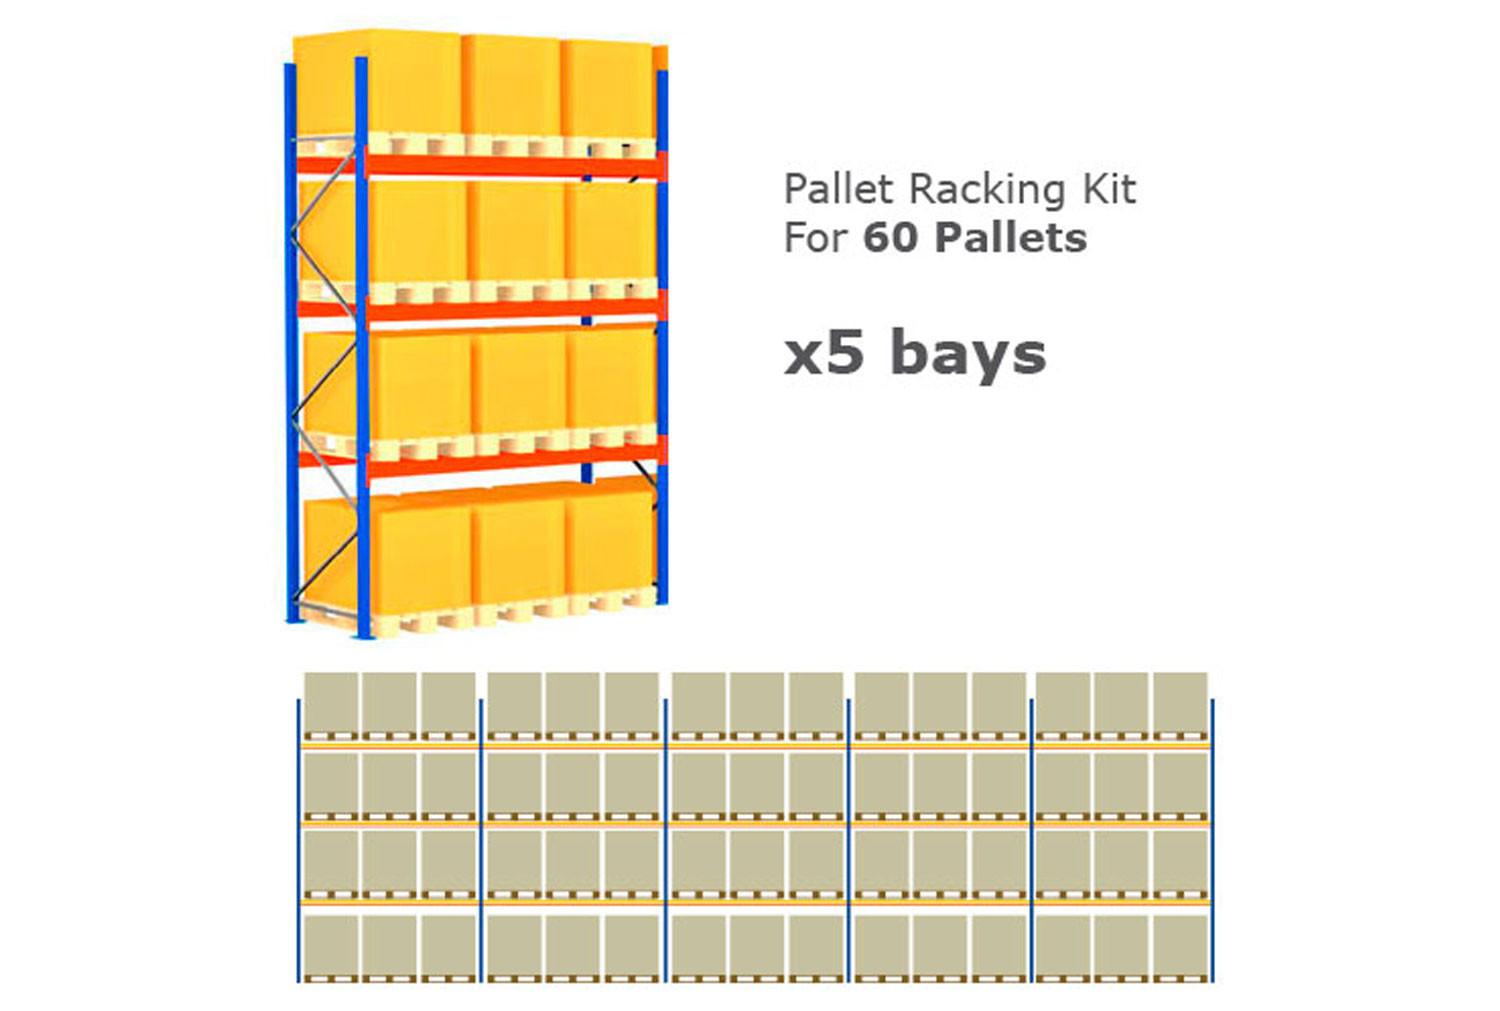 Pallet Racking Kit For 60 Pallets 14075wx4000h